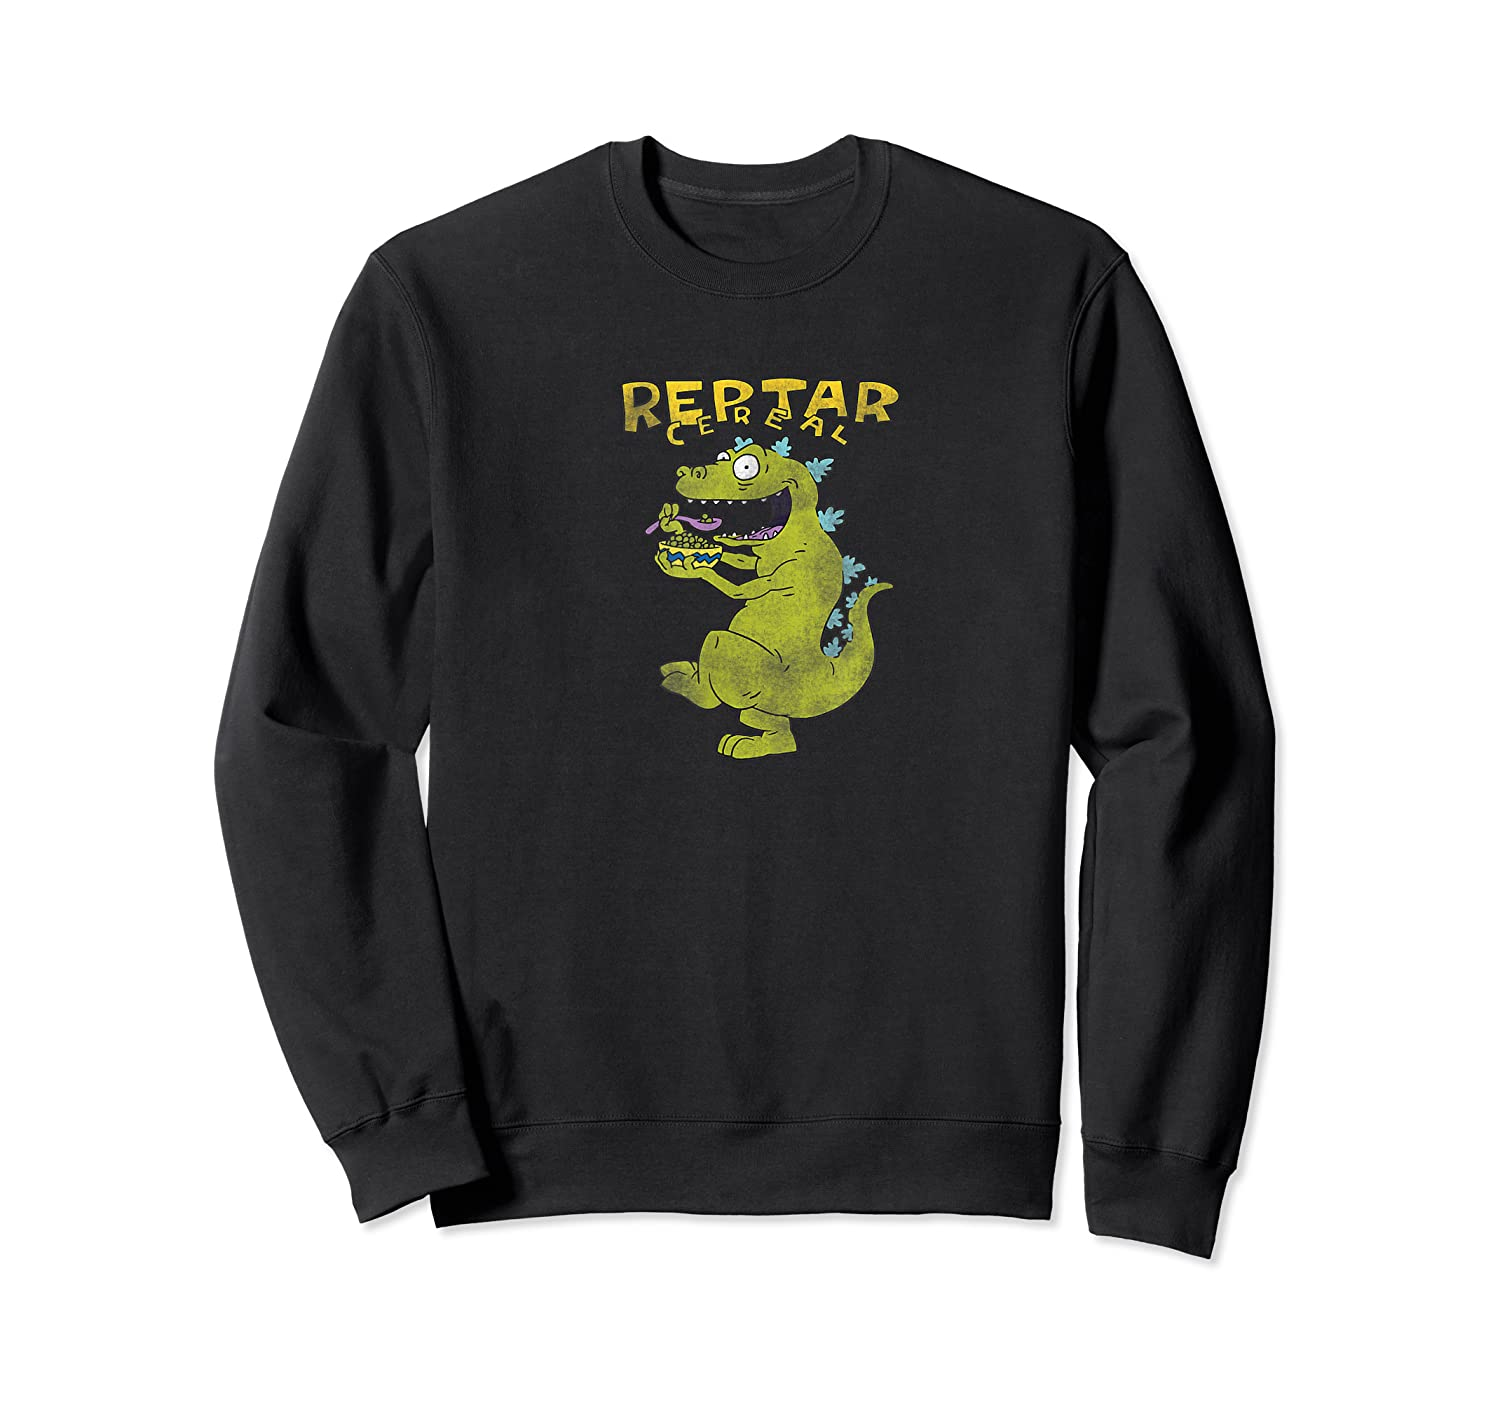 Reptar Eating Cereal With Text Reptar Cereal Shirts Crewneck Sweater